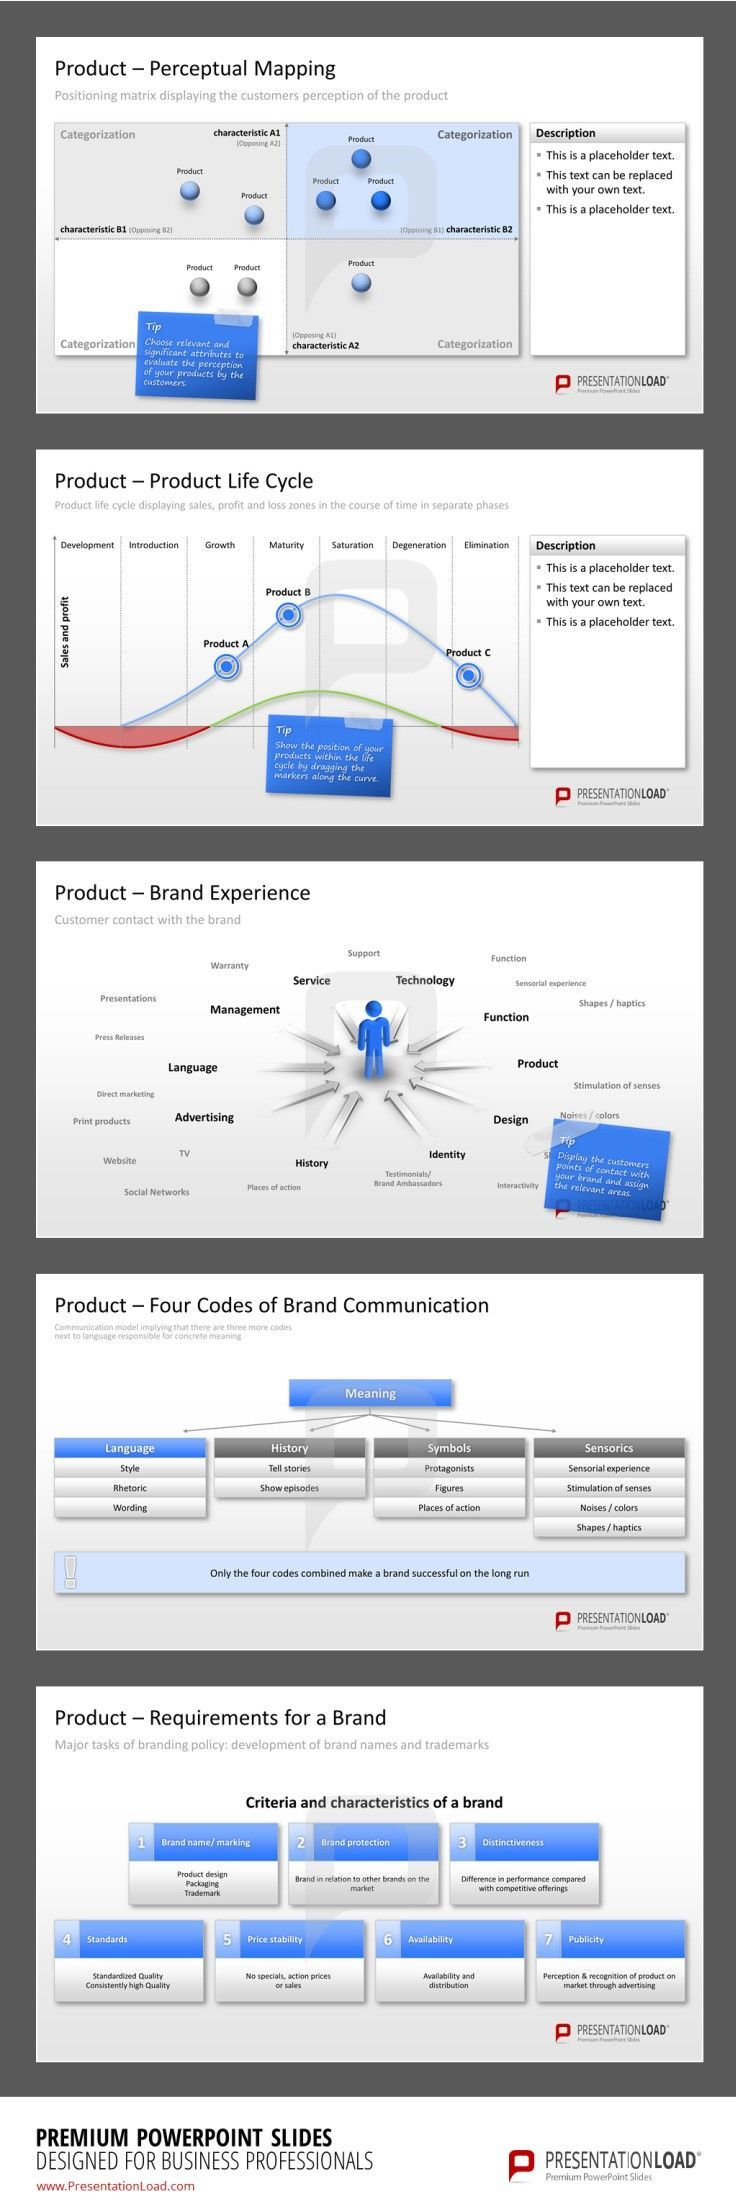 Marketing Plan PowerPoint Templates The Marketing Plan PowerPoint Templates contain a variety of slides to present specific information about your products. Use Perceptual Mapping to display the customers perception of the product or create a product life cycle displaying sales, profit and loss zones in the course of time in separate phases. The slides also contain information regarding the four codes of Brand Communication and the requirements for a brand. #presentationload